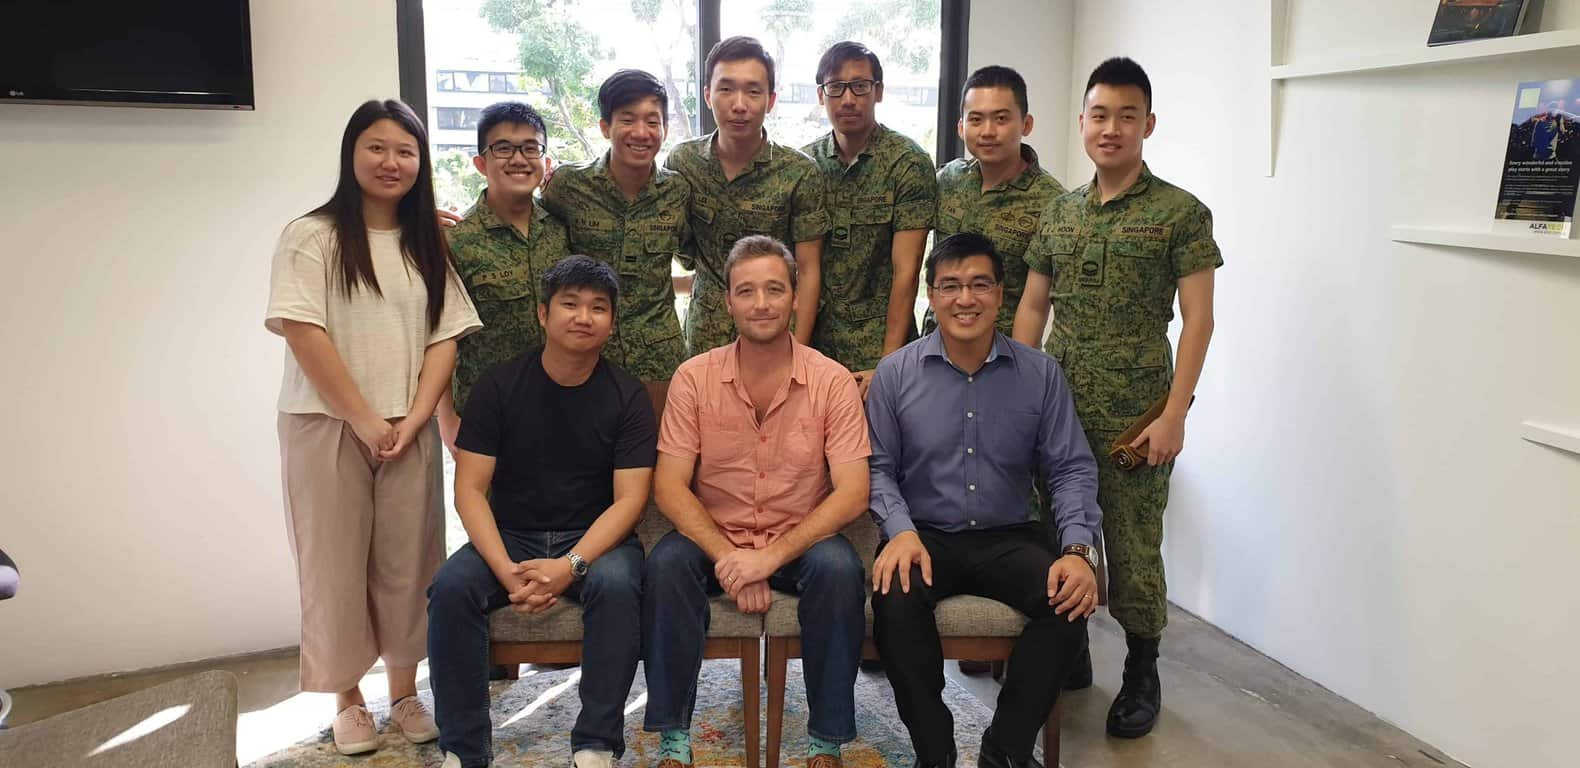 DVUCA staff wearing their uniforms during SAF Day (1 July) in 2019